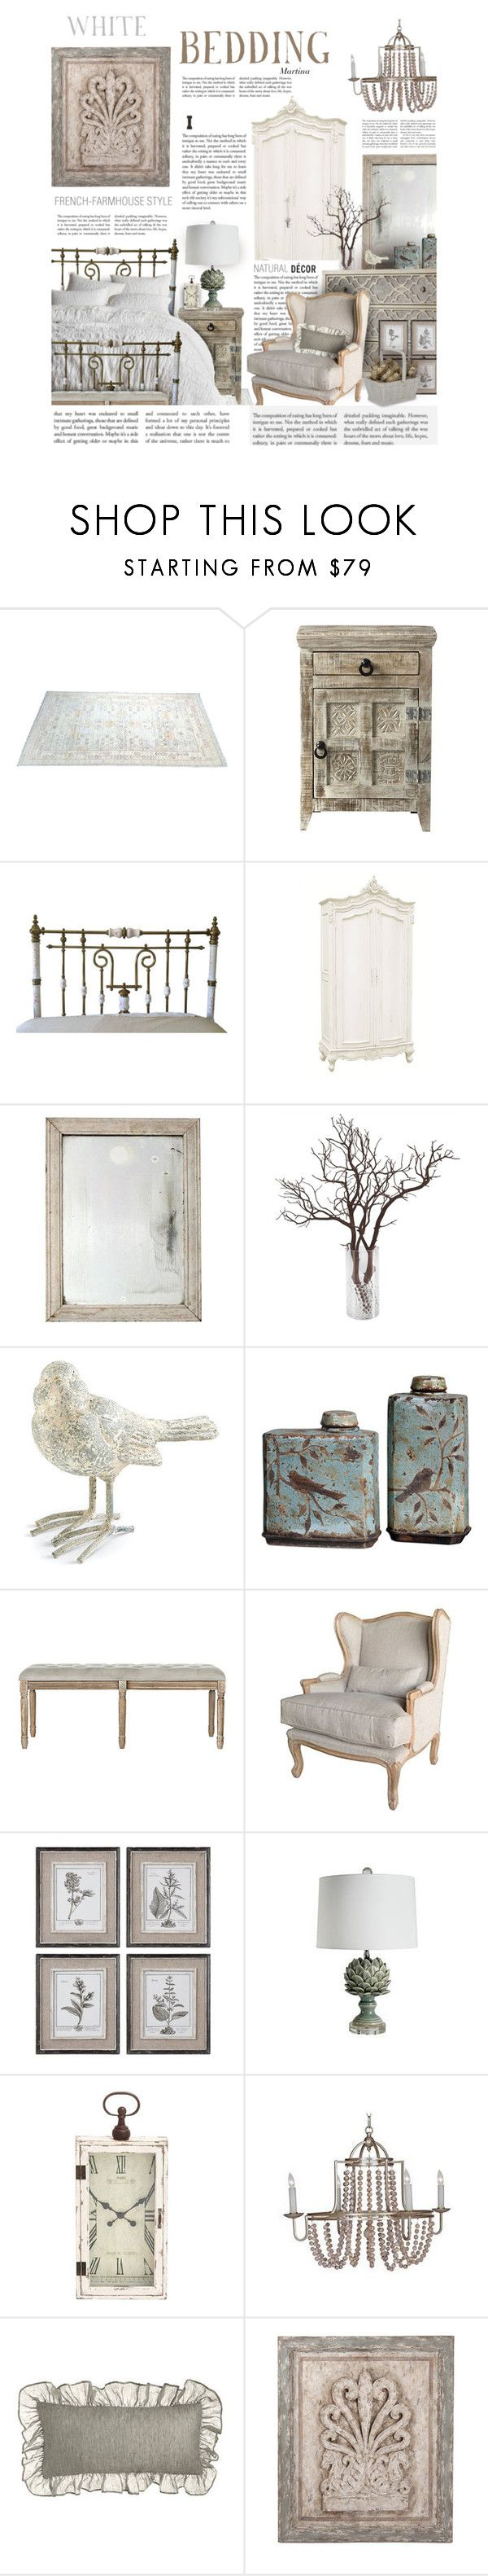 """""""White Bedding"""" by thewondersoffashion ❤ liked on Polyvore featuring interior, interiors, interior design, home, home decor, interior decorating, Home Decorators Collection, iCanvas, Uttermost and Pine Cone Hill"""